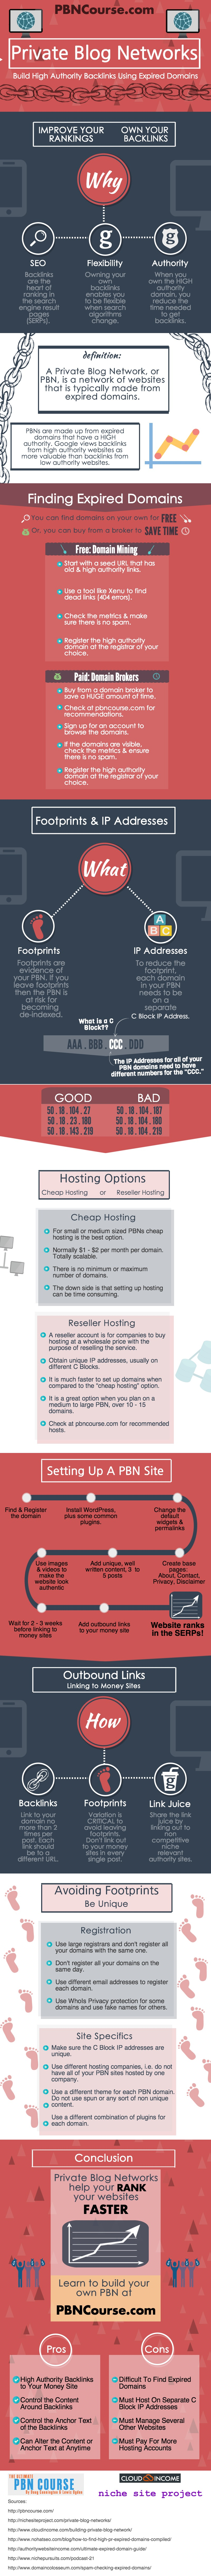 ultimate-private-blog-network-infographic what is PBN hosting